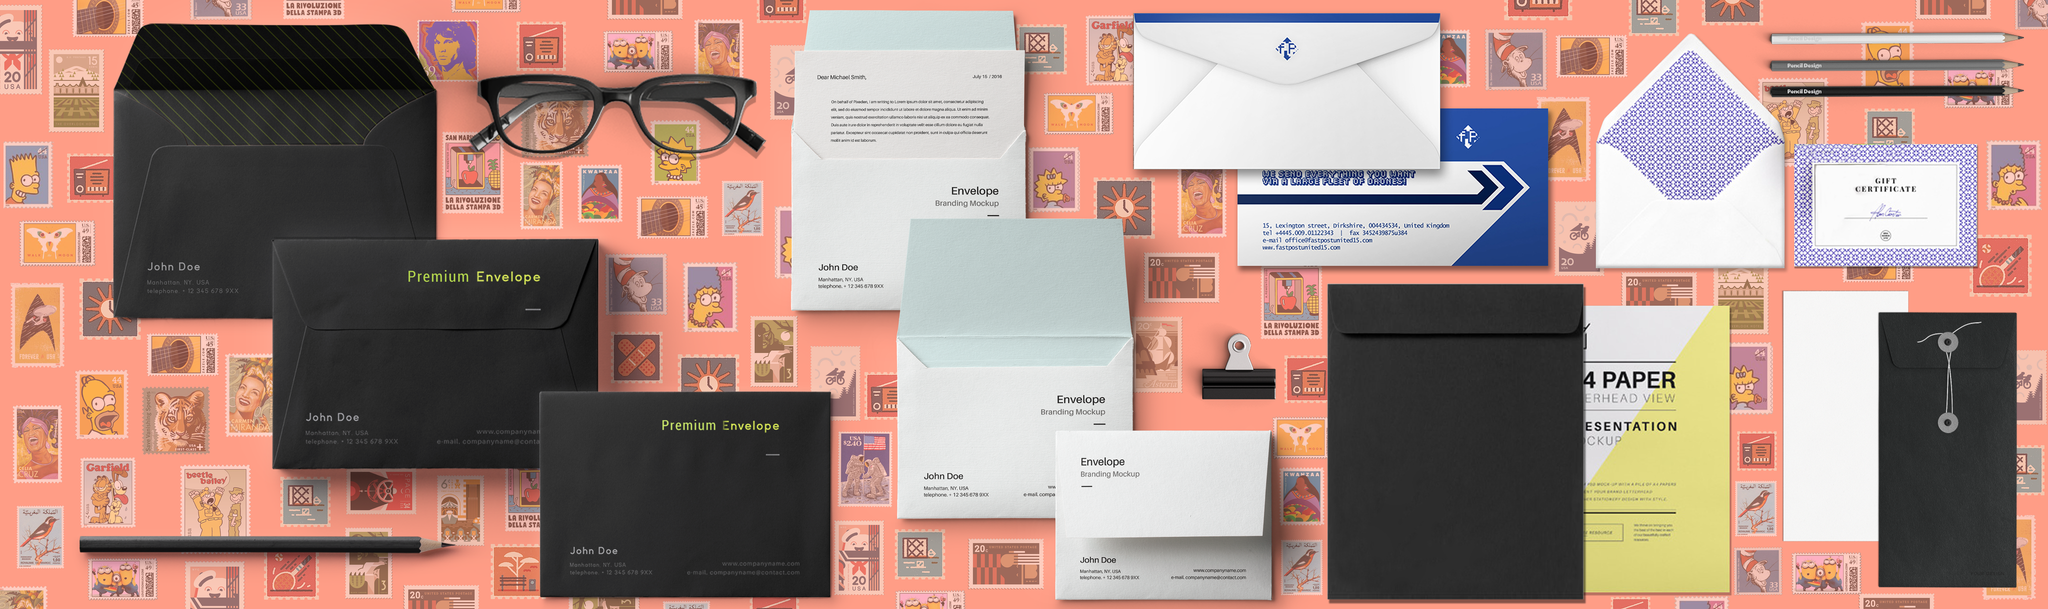 custom_printed_envelopes_miami_florida